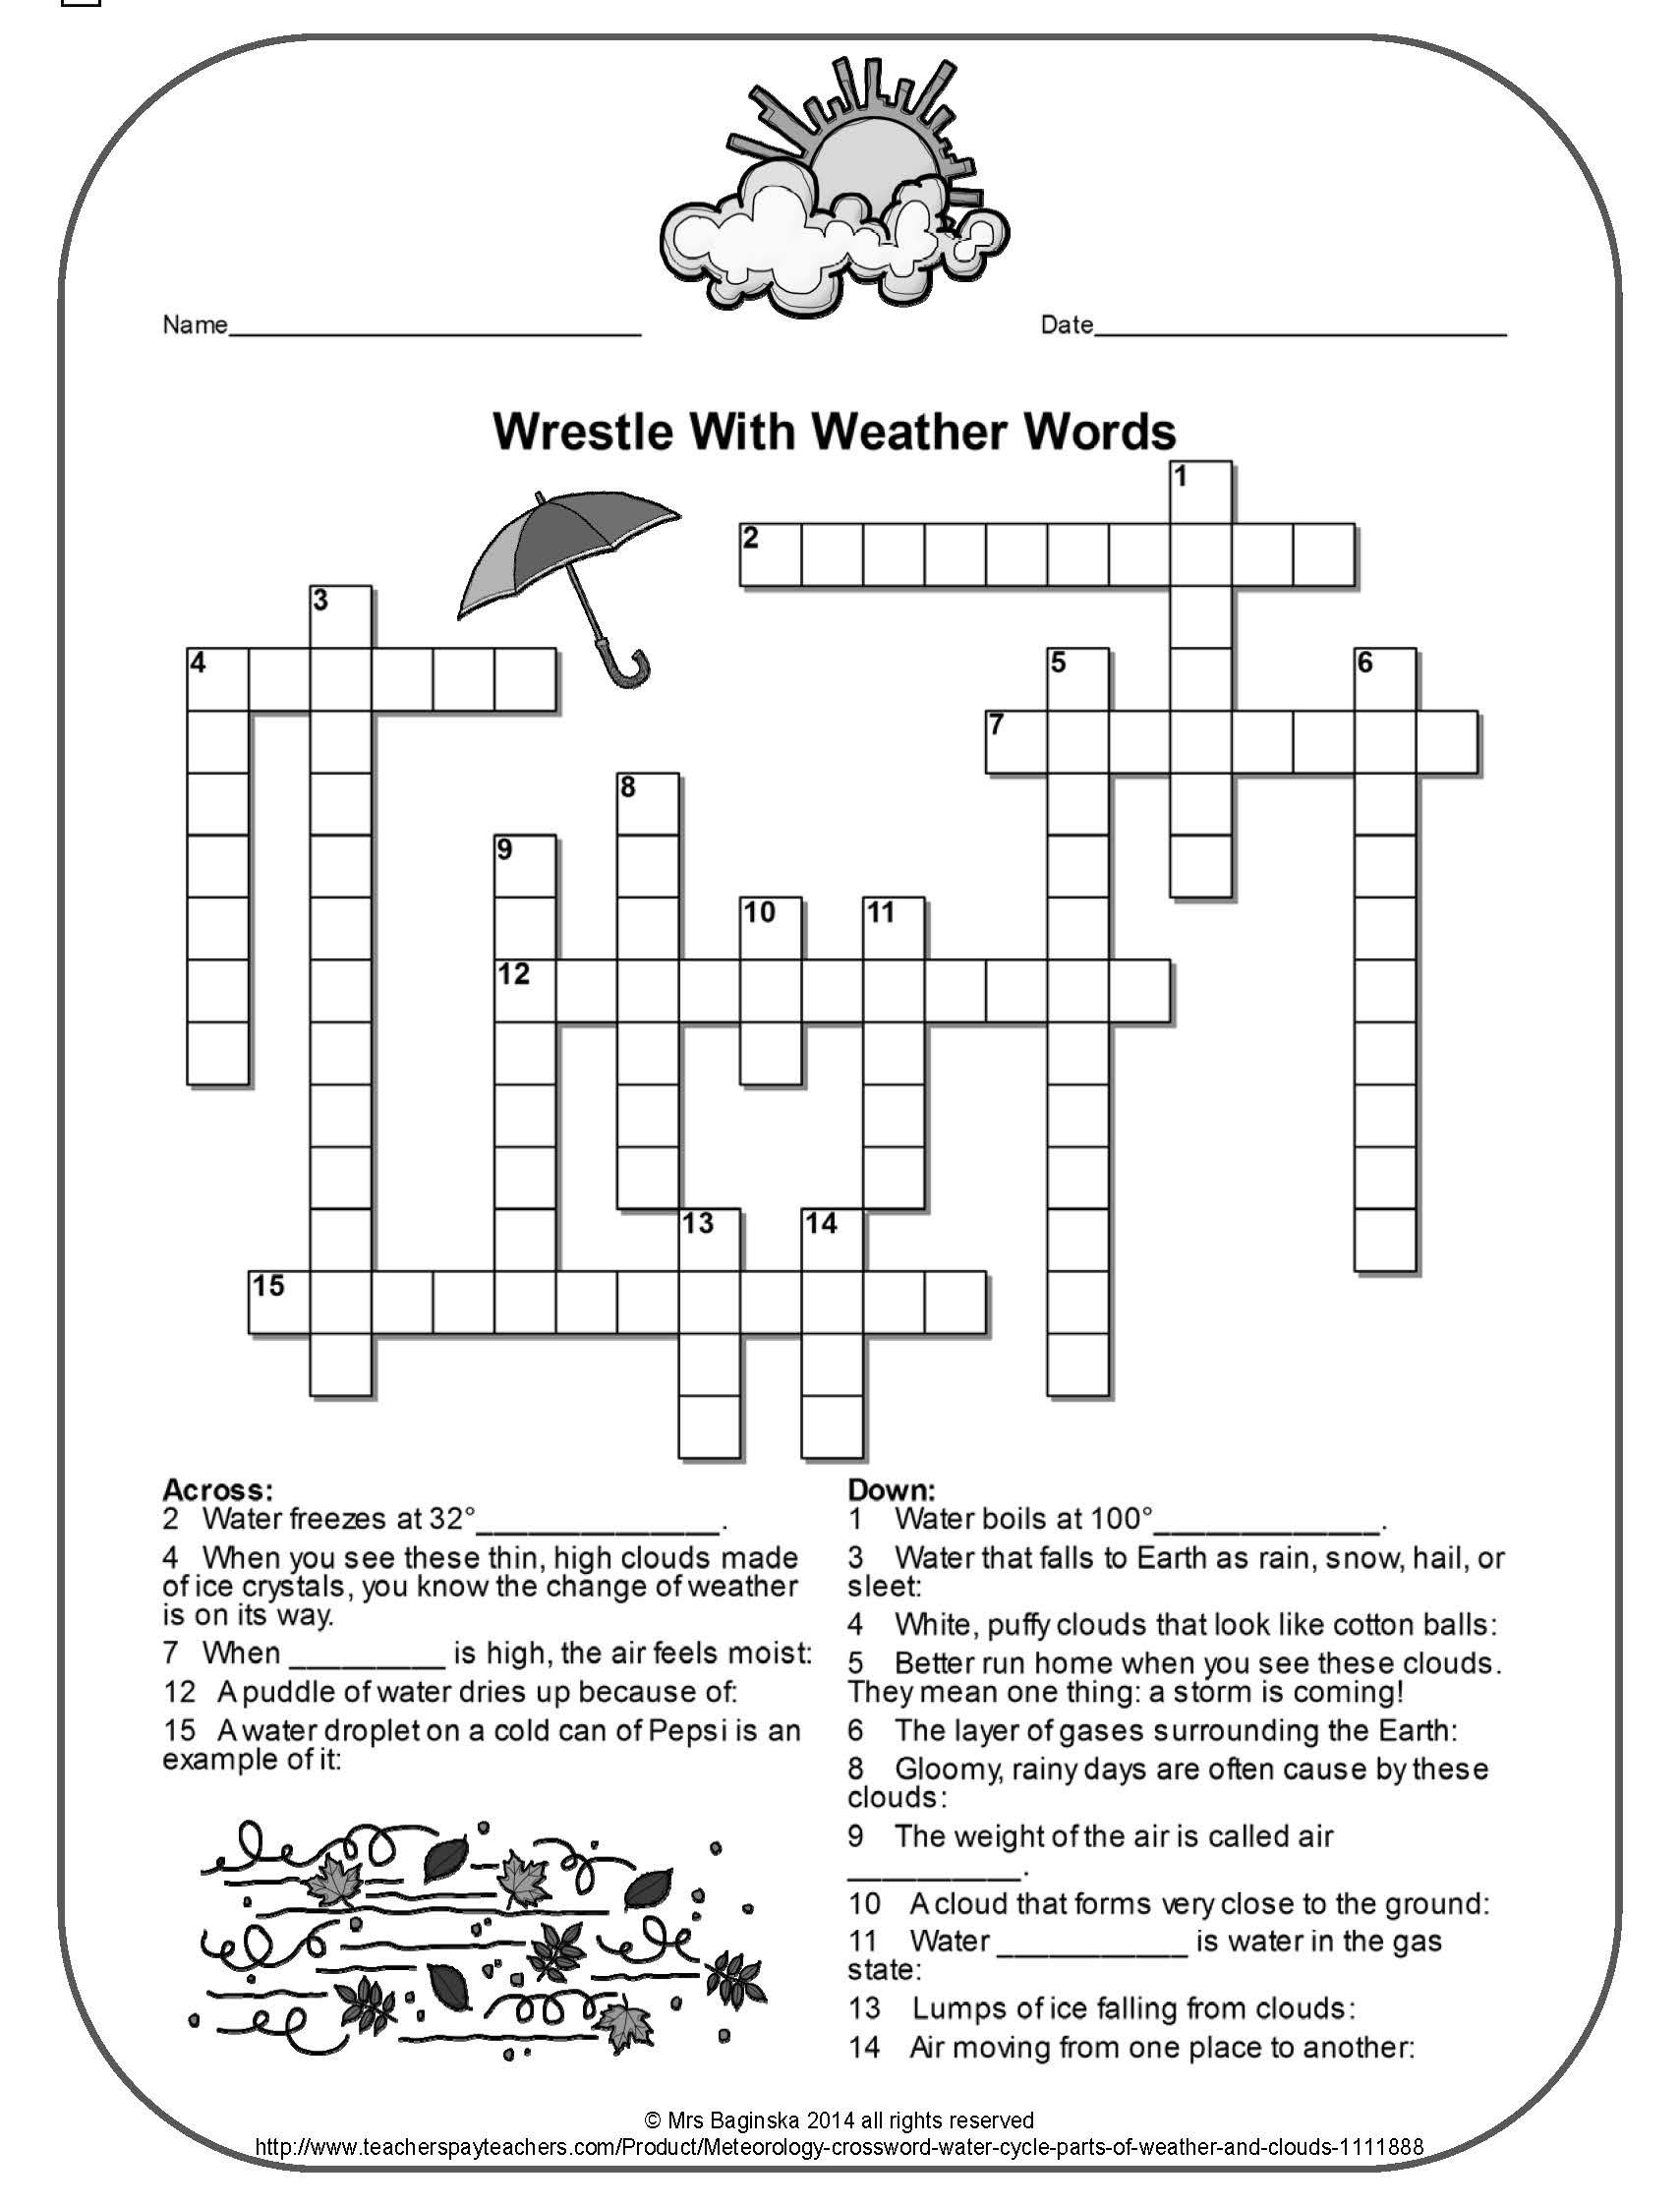 Free Weather Crossword Perfect For The Review Of Important Meteorology Concepts